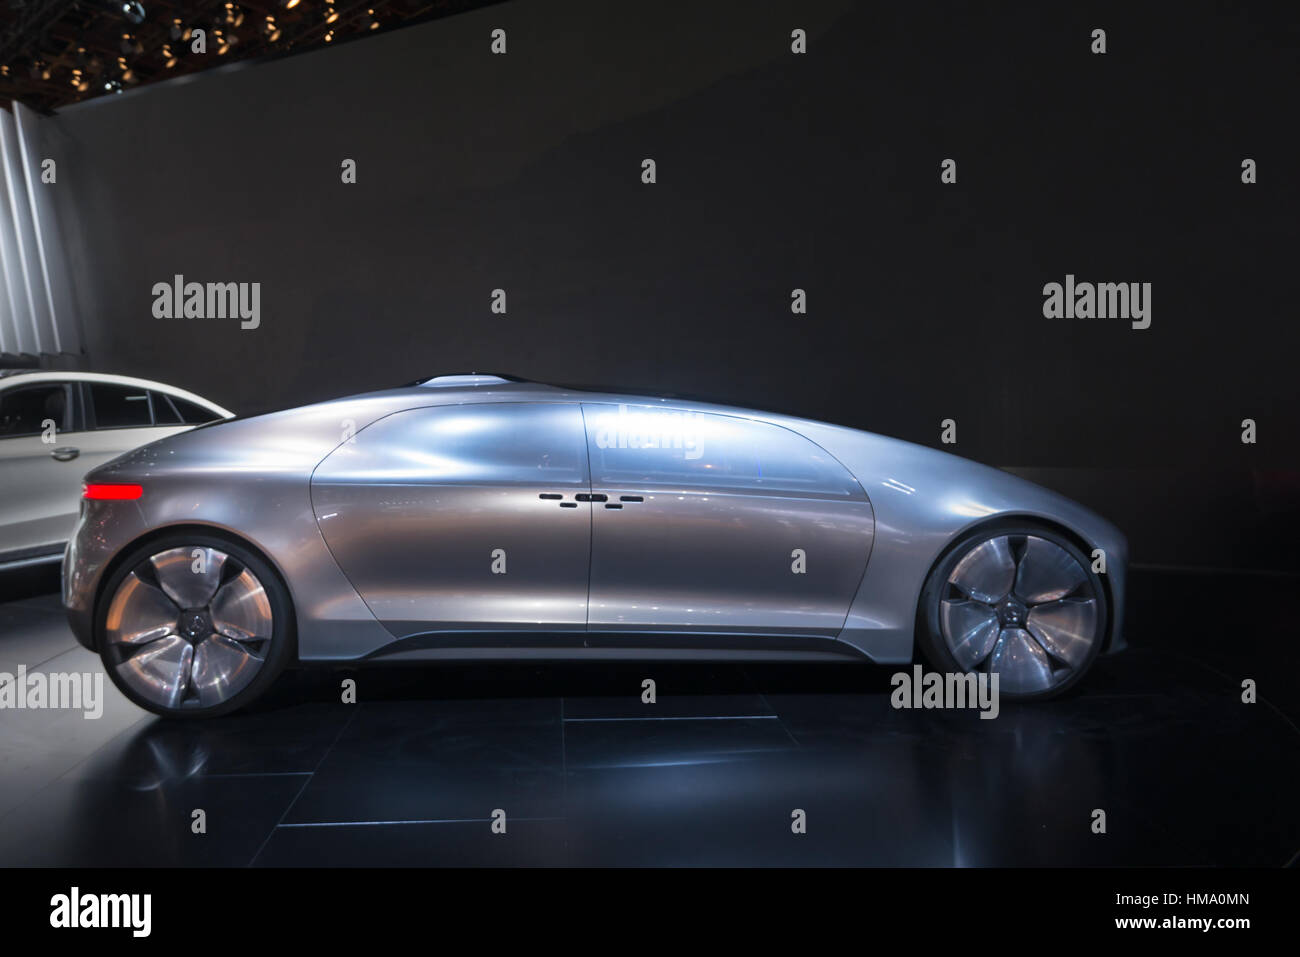 Mercedes F 015 Concept car at the North American International Auto Show (NAIAS). - Stock Image